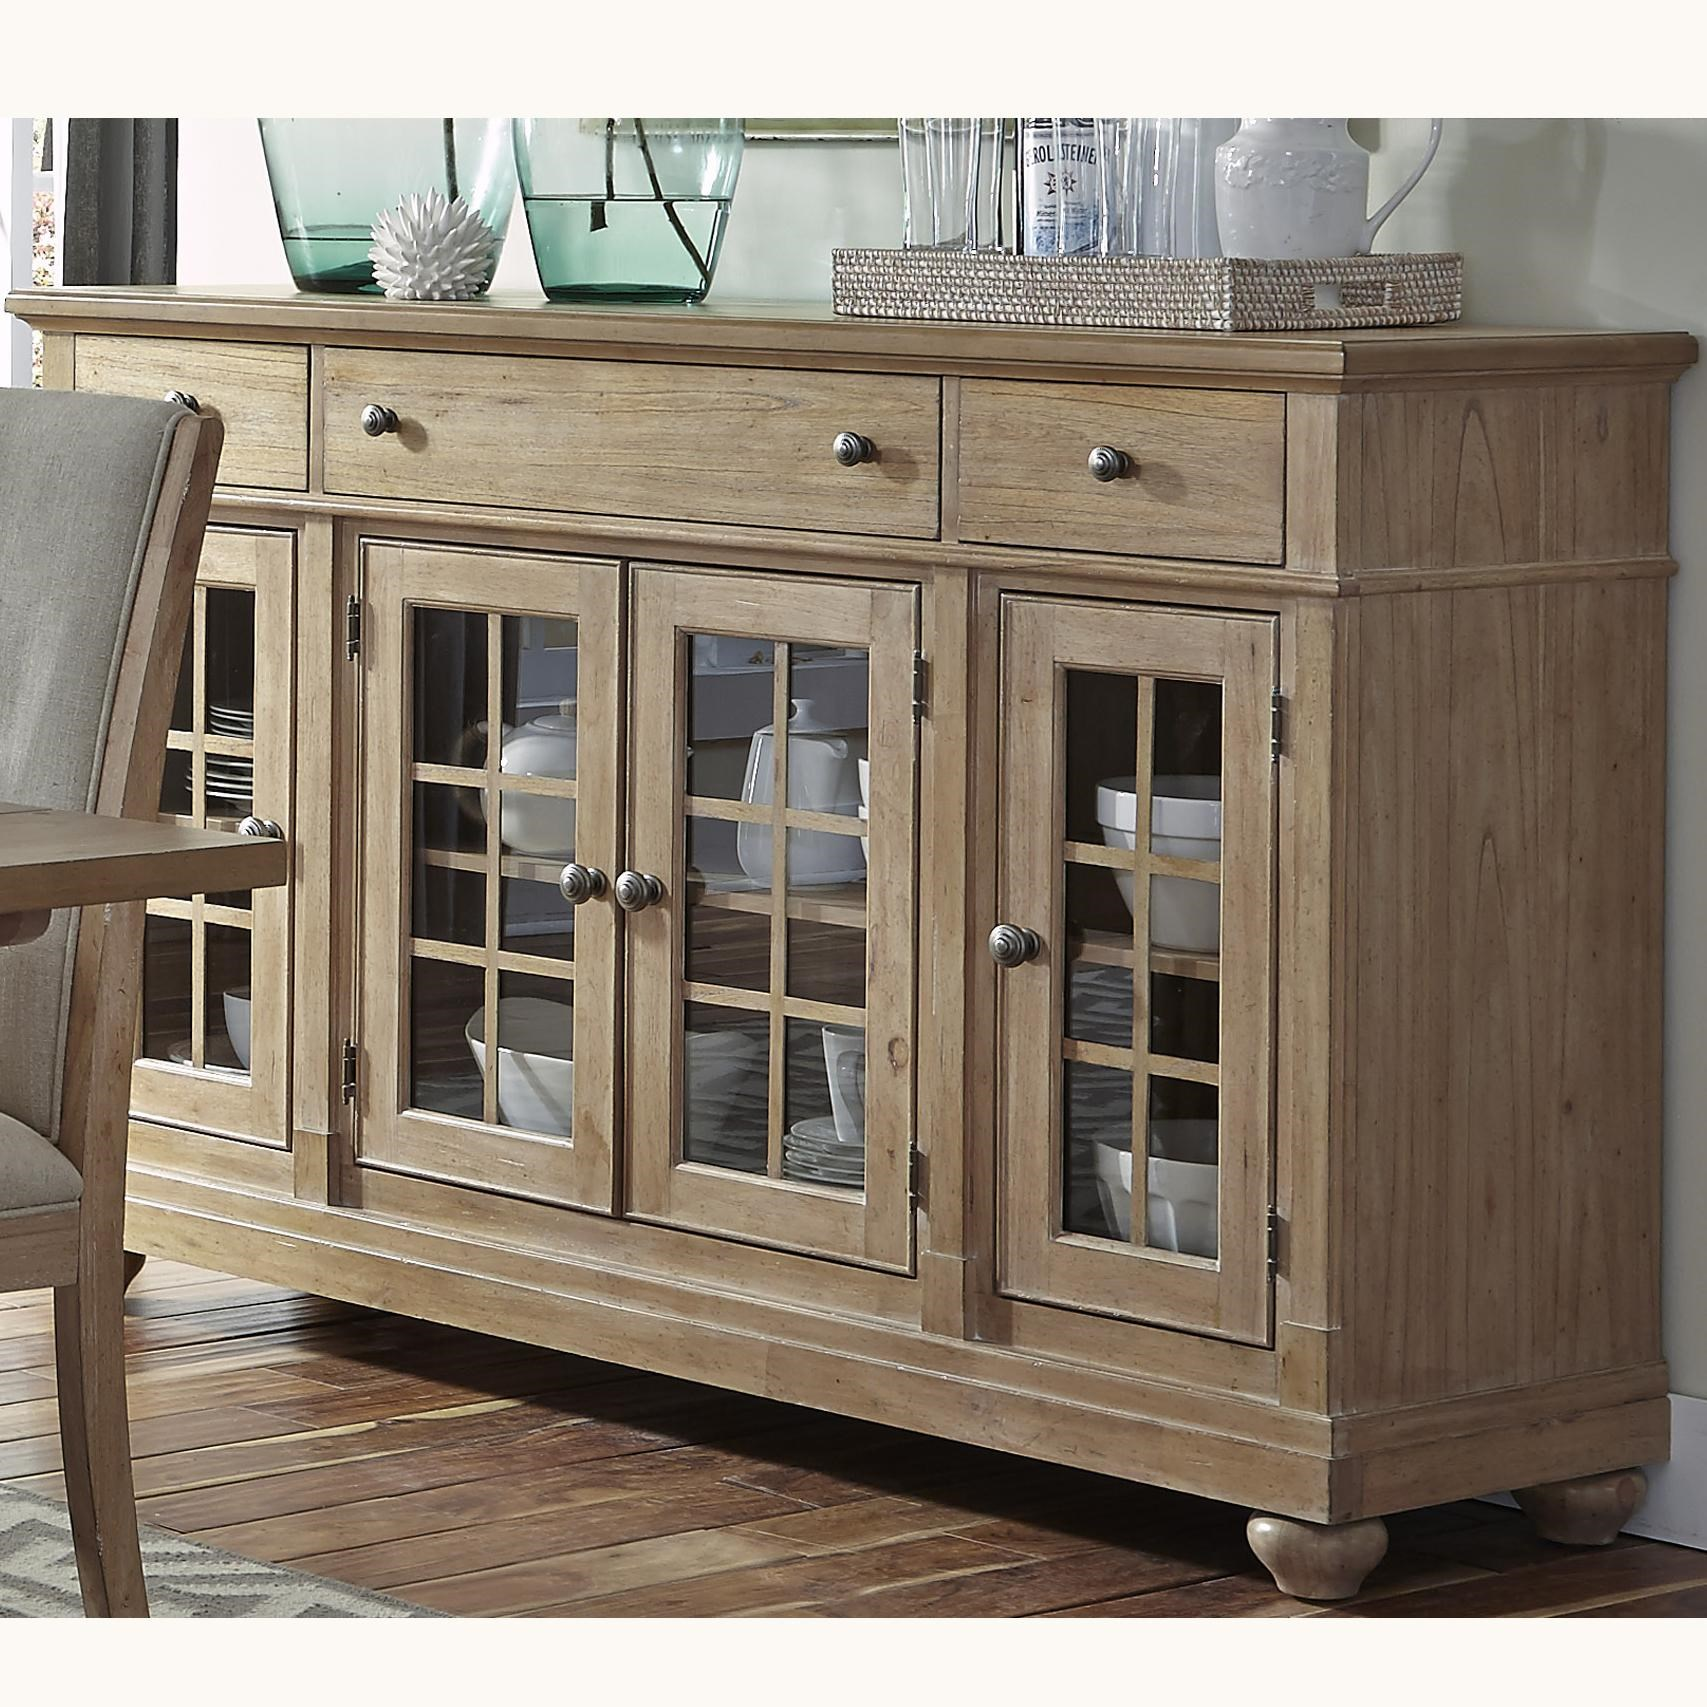 Captivating Liberty Furniture Harbor View Buffet With 3 Shelves And 4 Doors